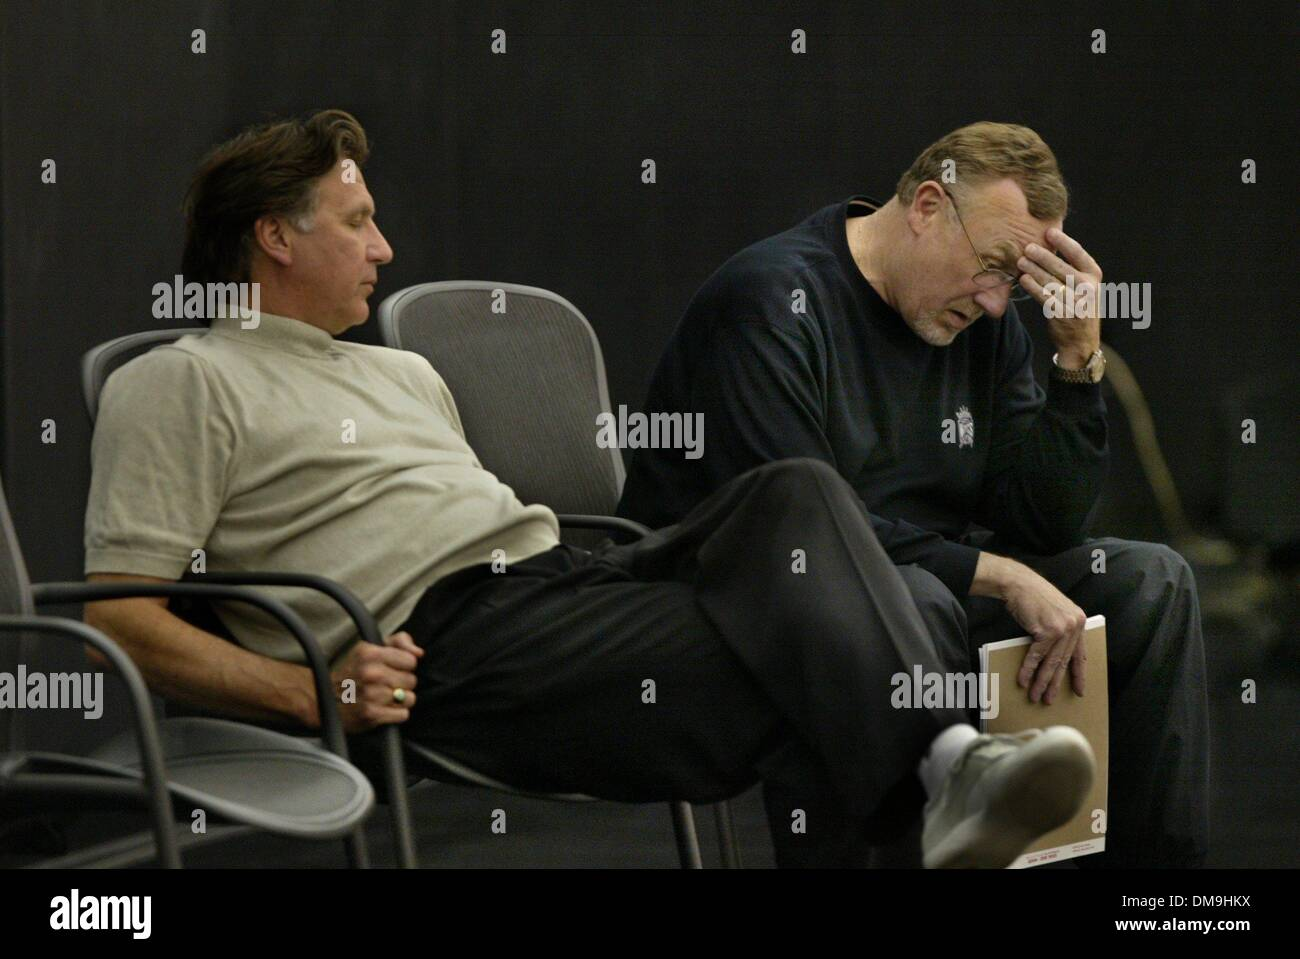 Rick Adelman and Geoff Petrie left sit down after a practice